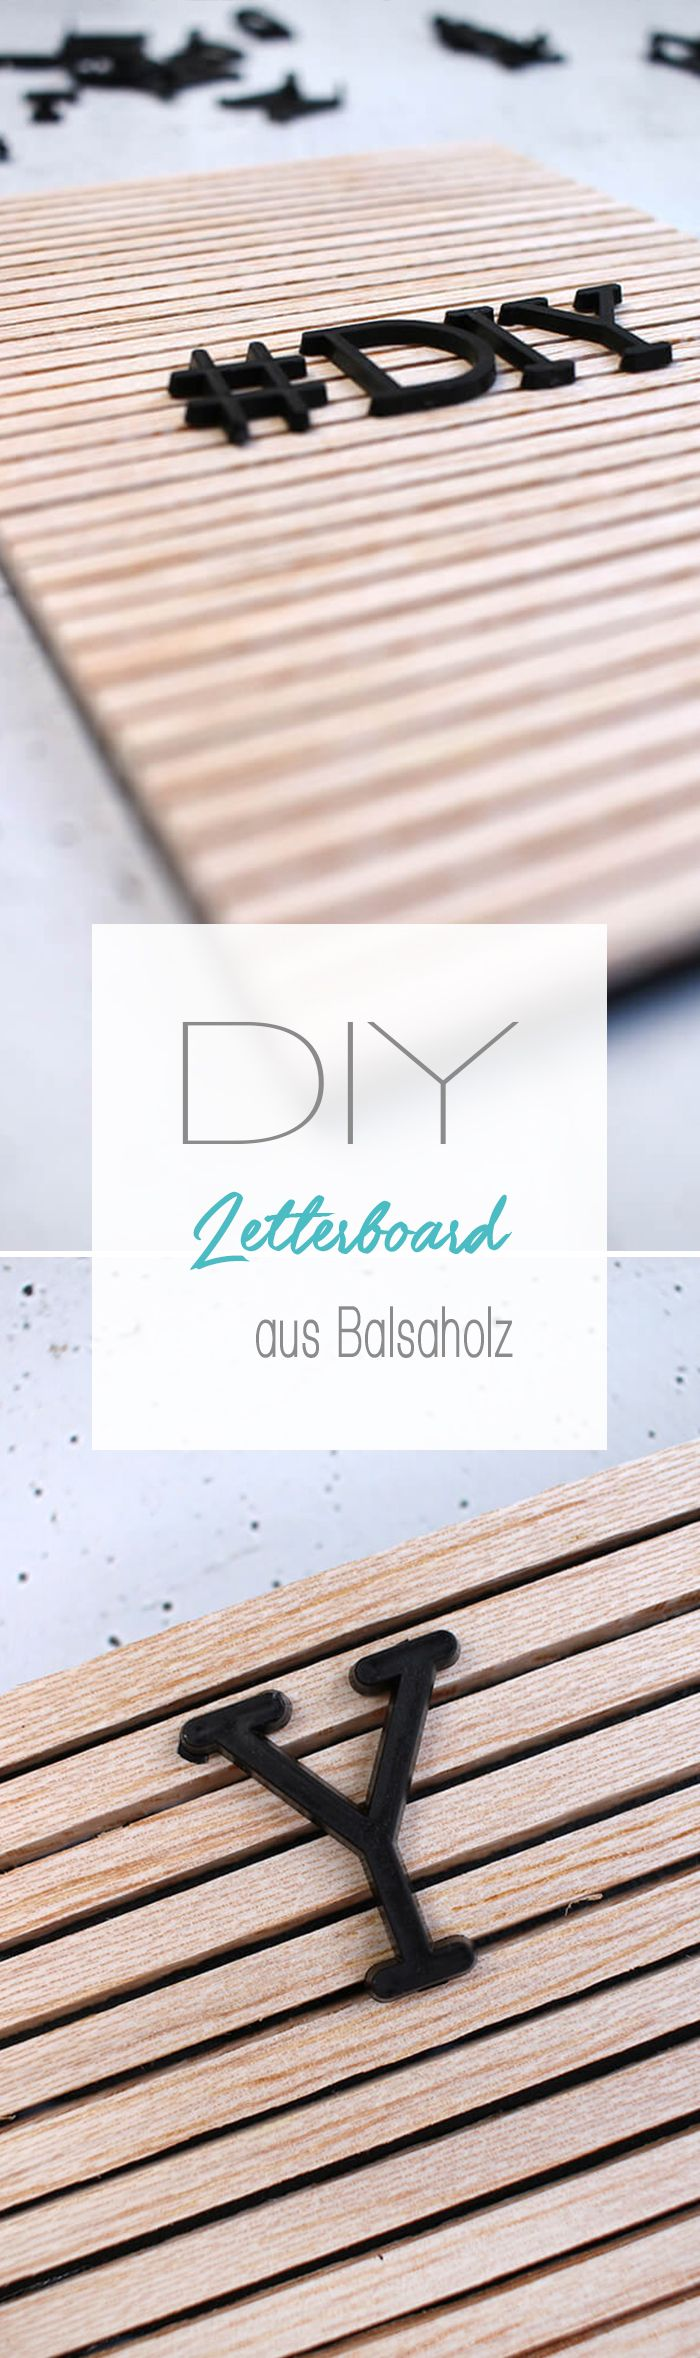 327 best DIY - Do it Yourself images on Pinterest | Art projects ...